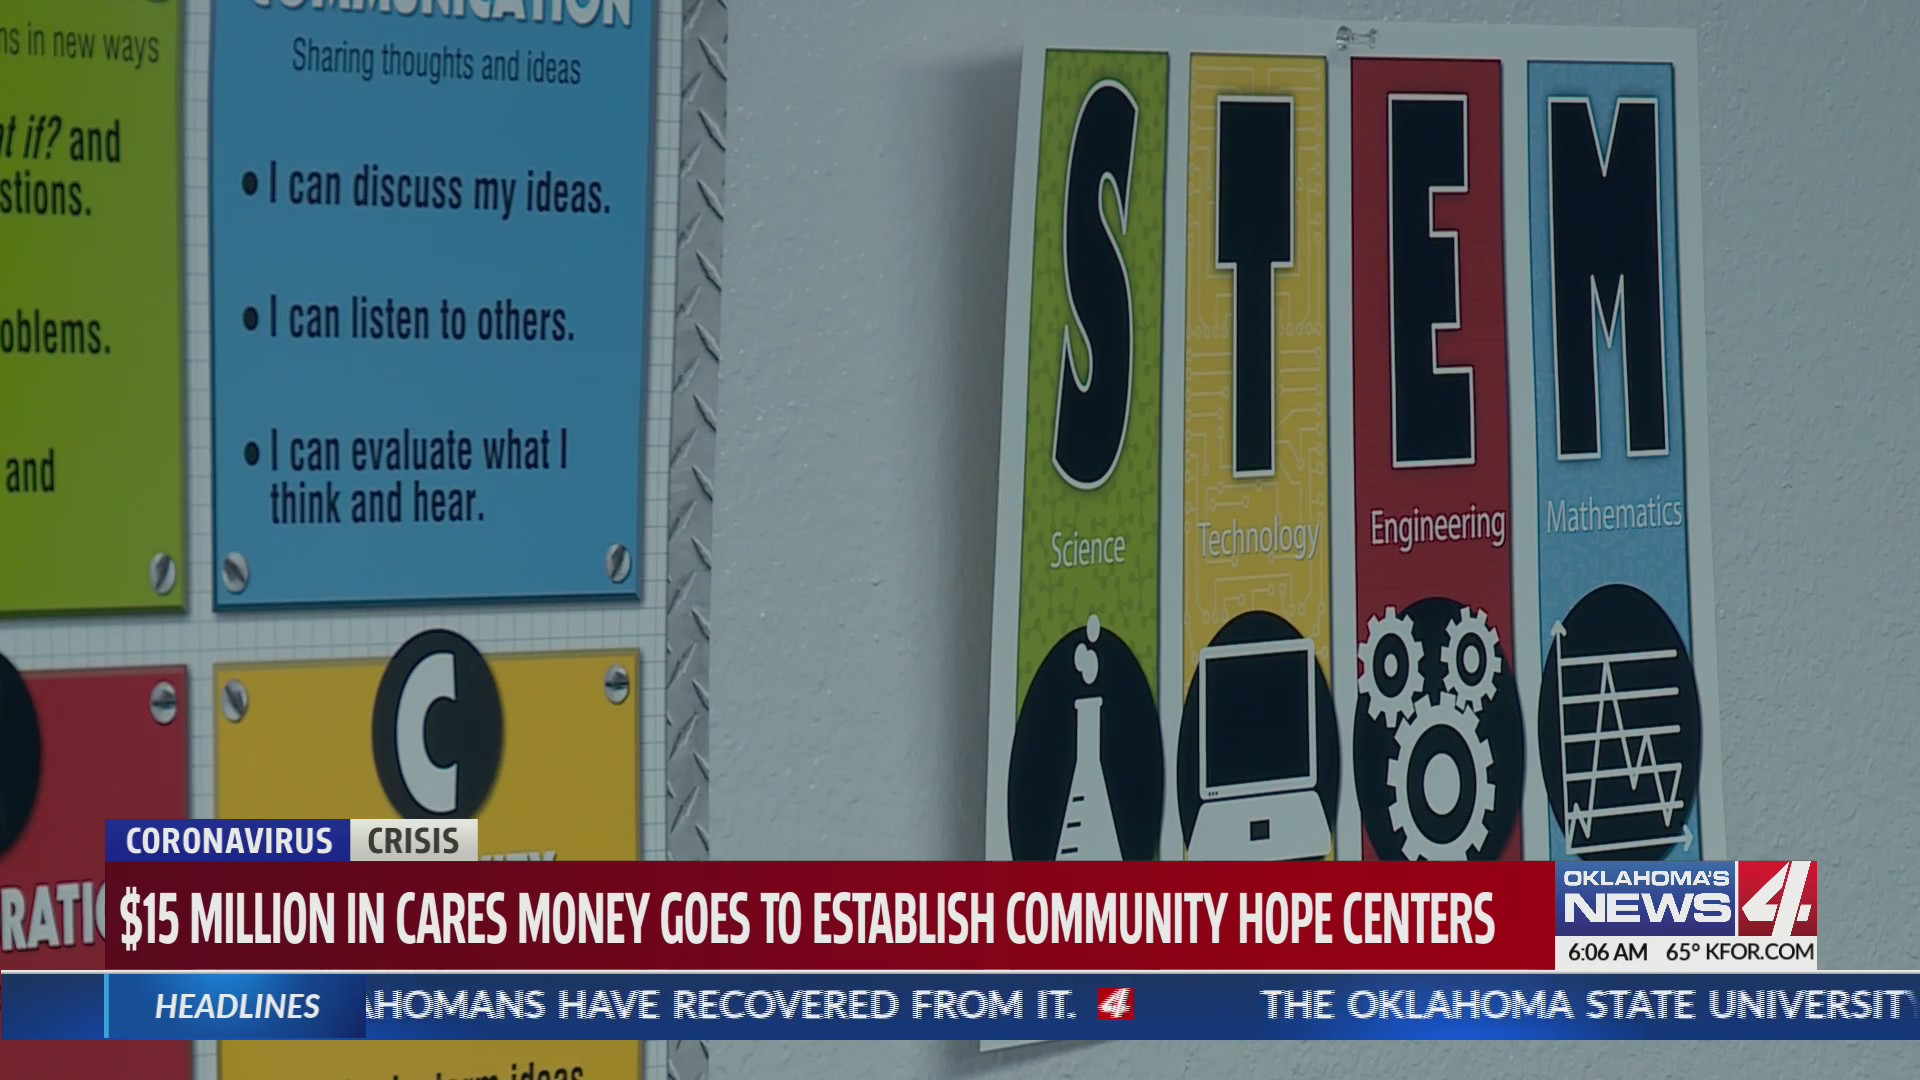 Community hope center STEM signs